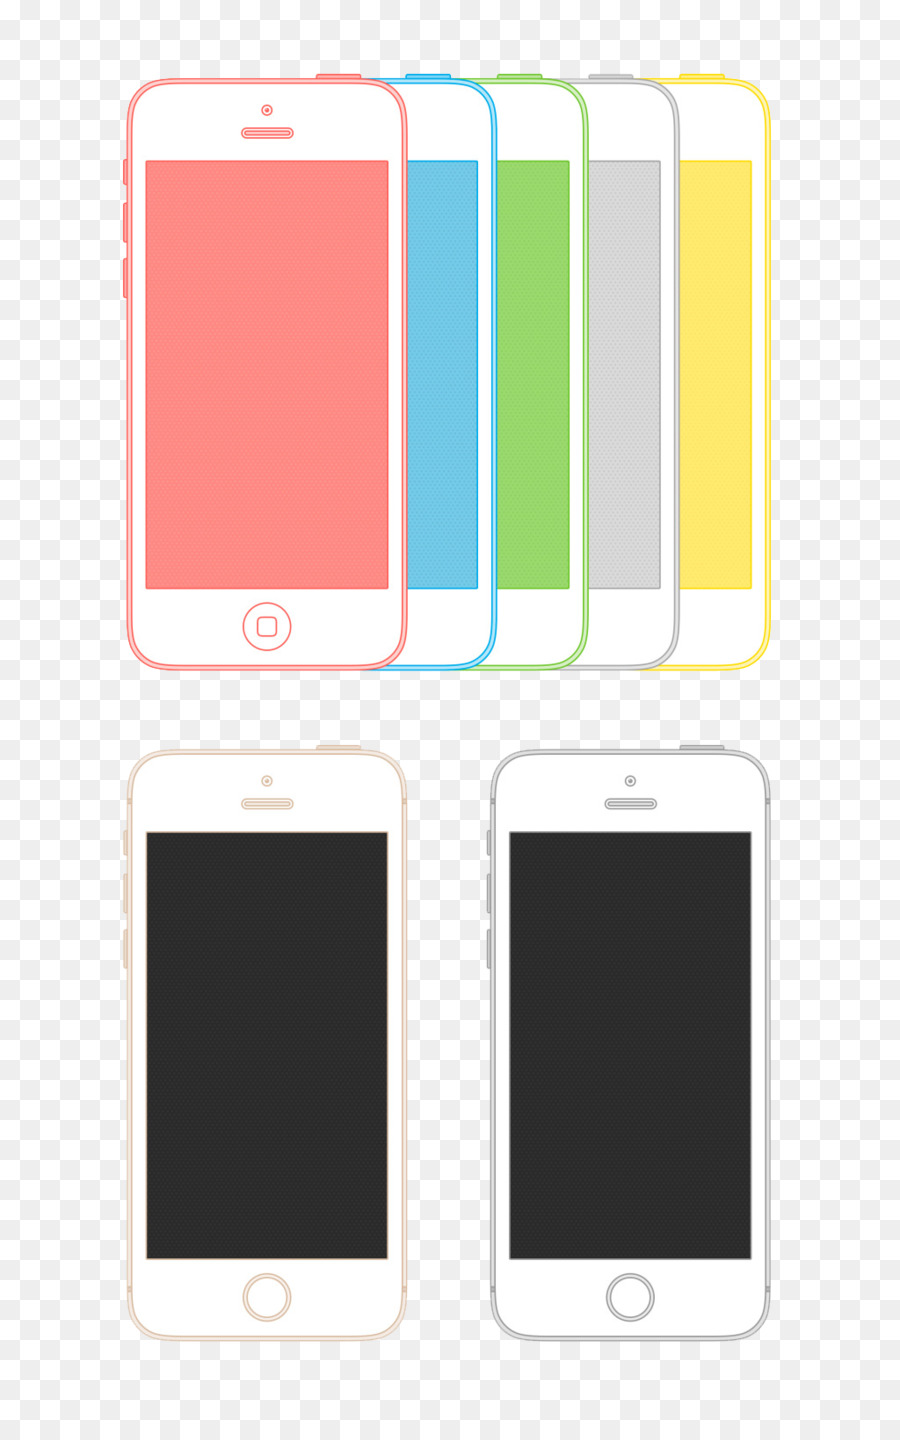 hight resolution of iphone 5s iphone 5 iphone 6 smartphone mobile phone accessories png